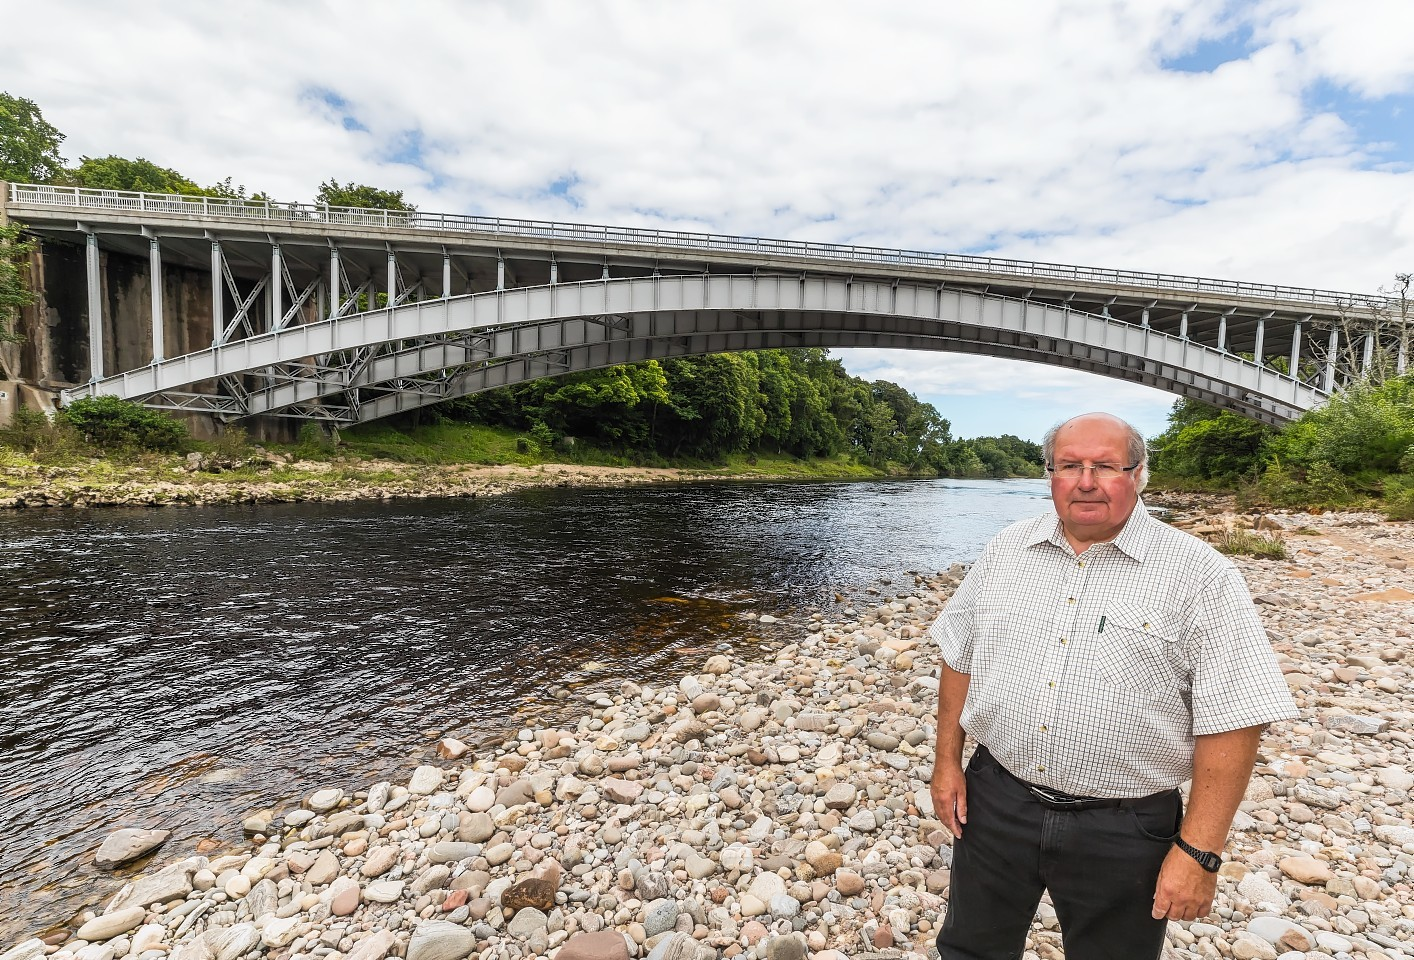 This is STEVE ARKLEY on the banks of the River Findhorn near Forres.